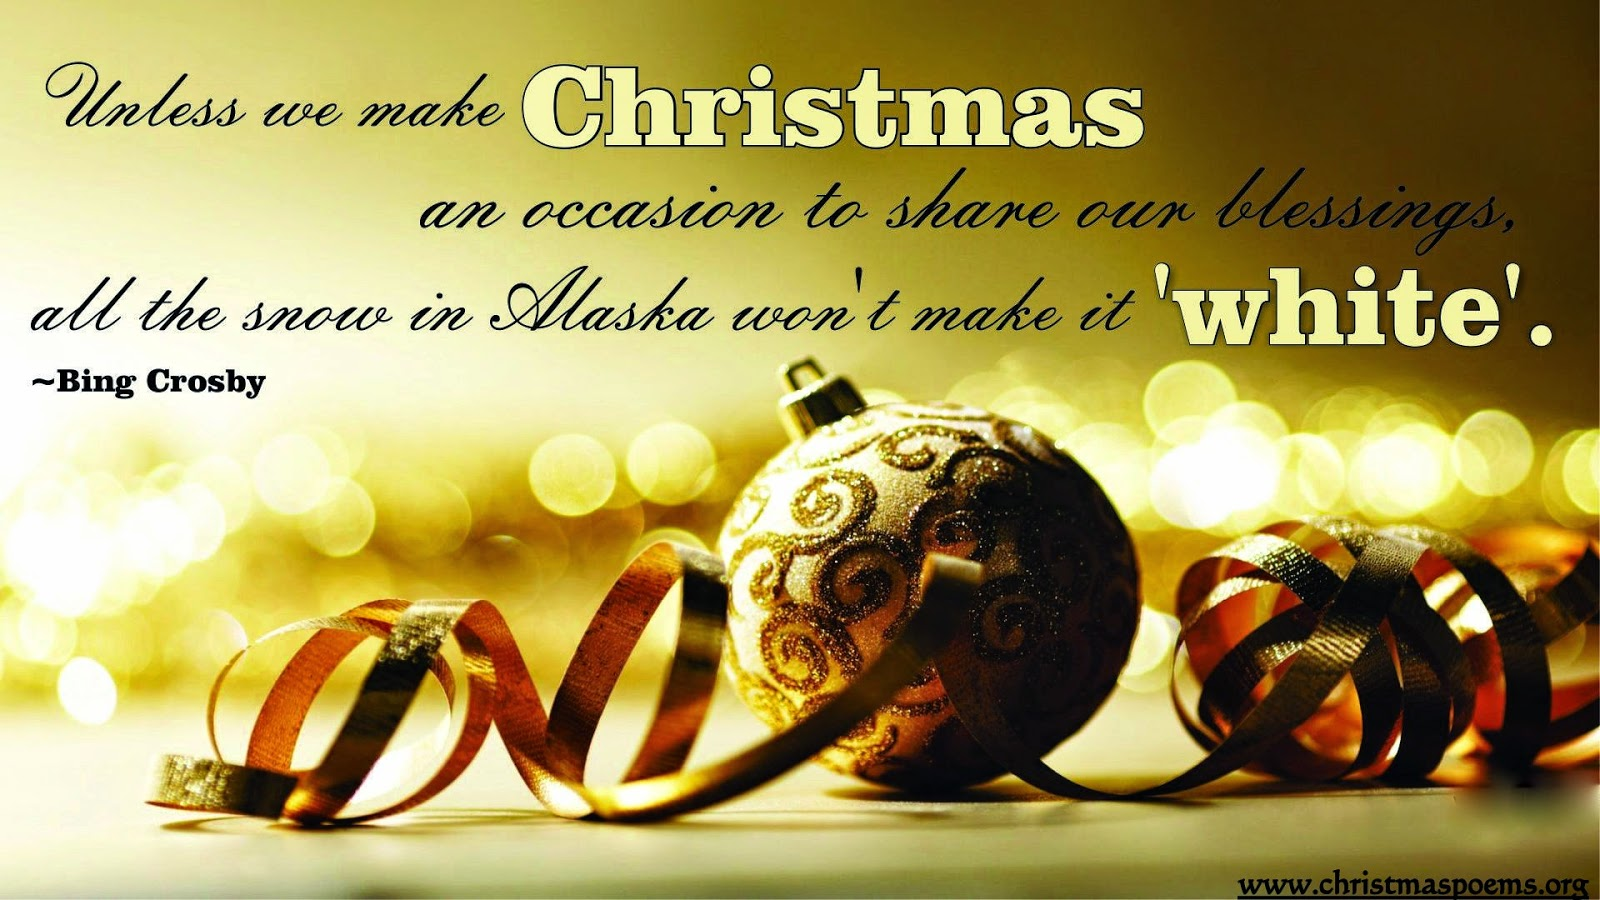 Merry Christmas Quotes | Happy Christmas 2014 Quotes | Xmas Quotes